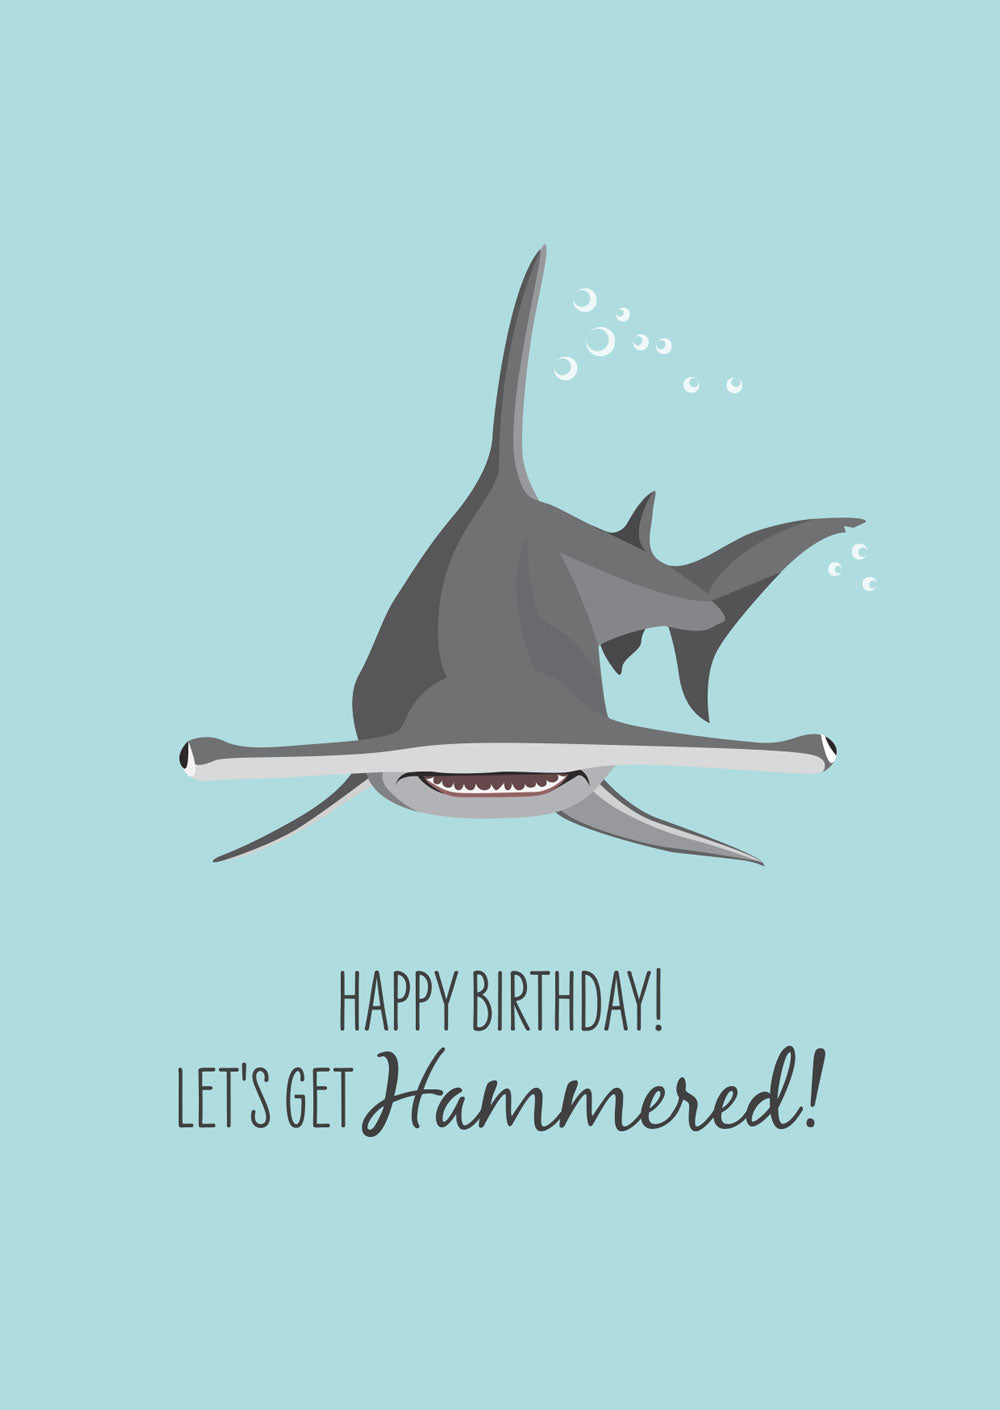 Birthday Card - Hammerhead Shark